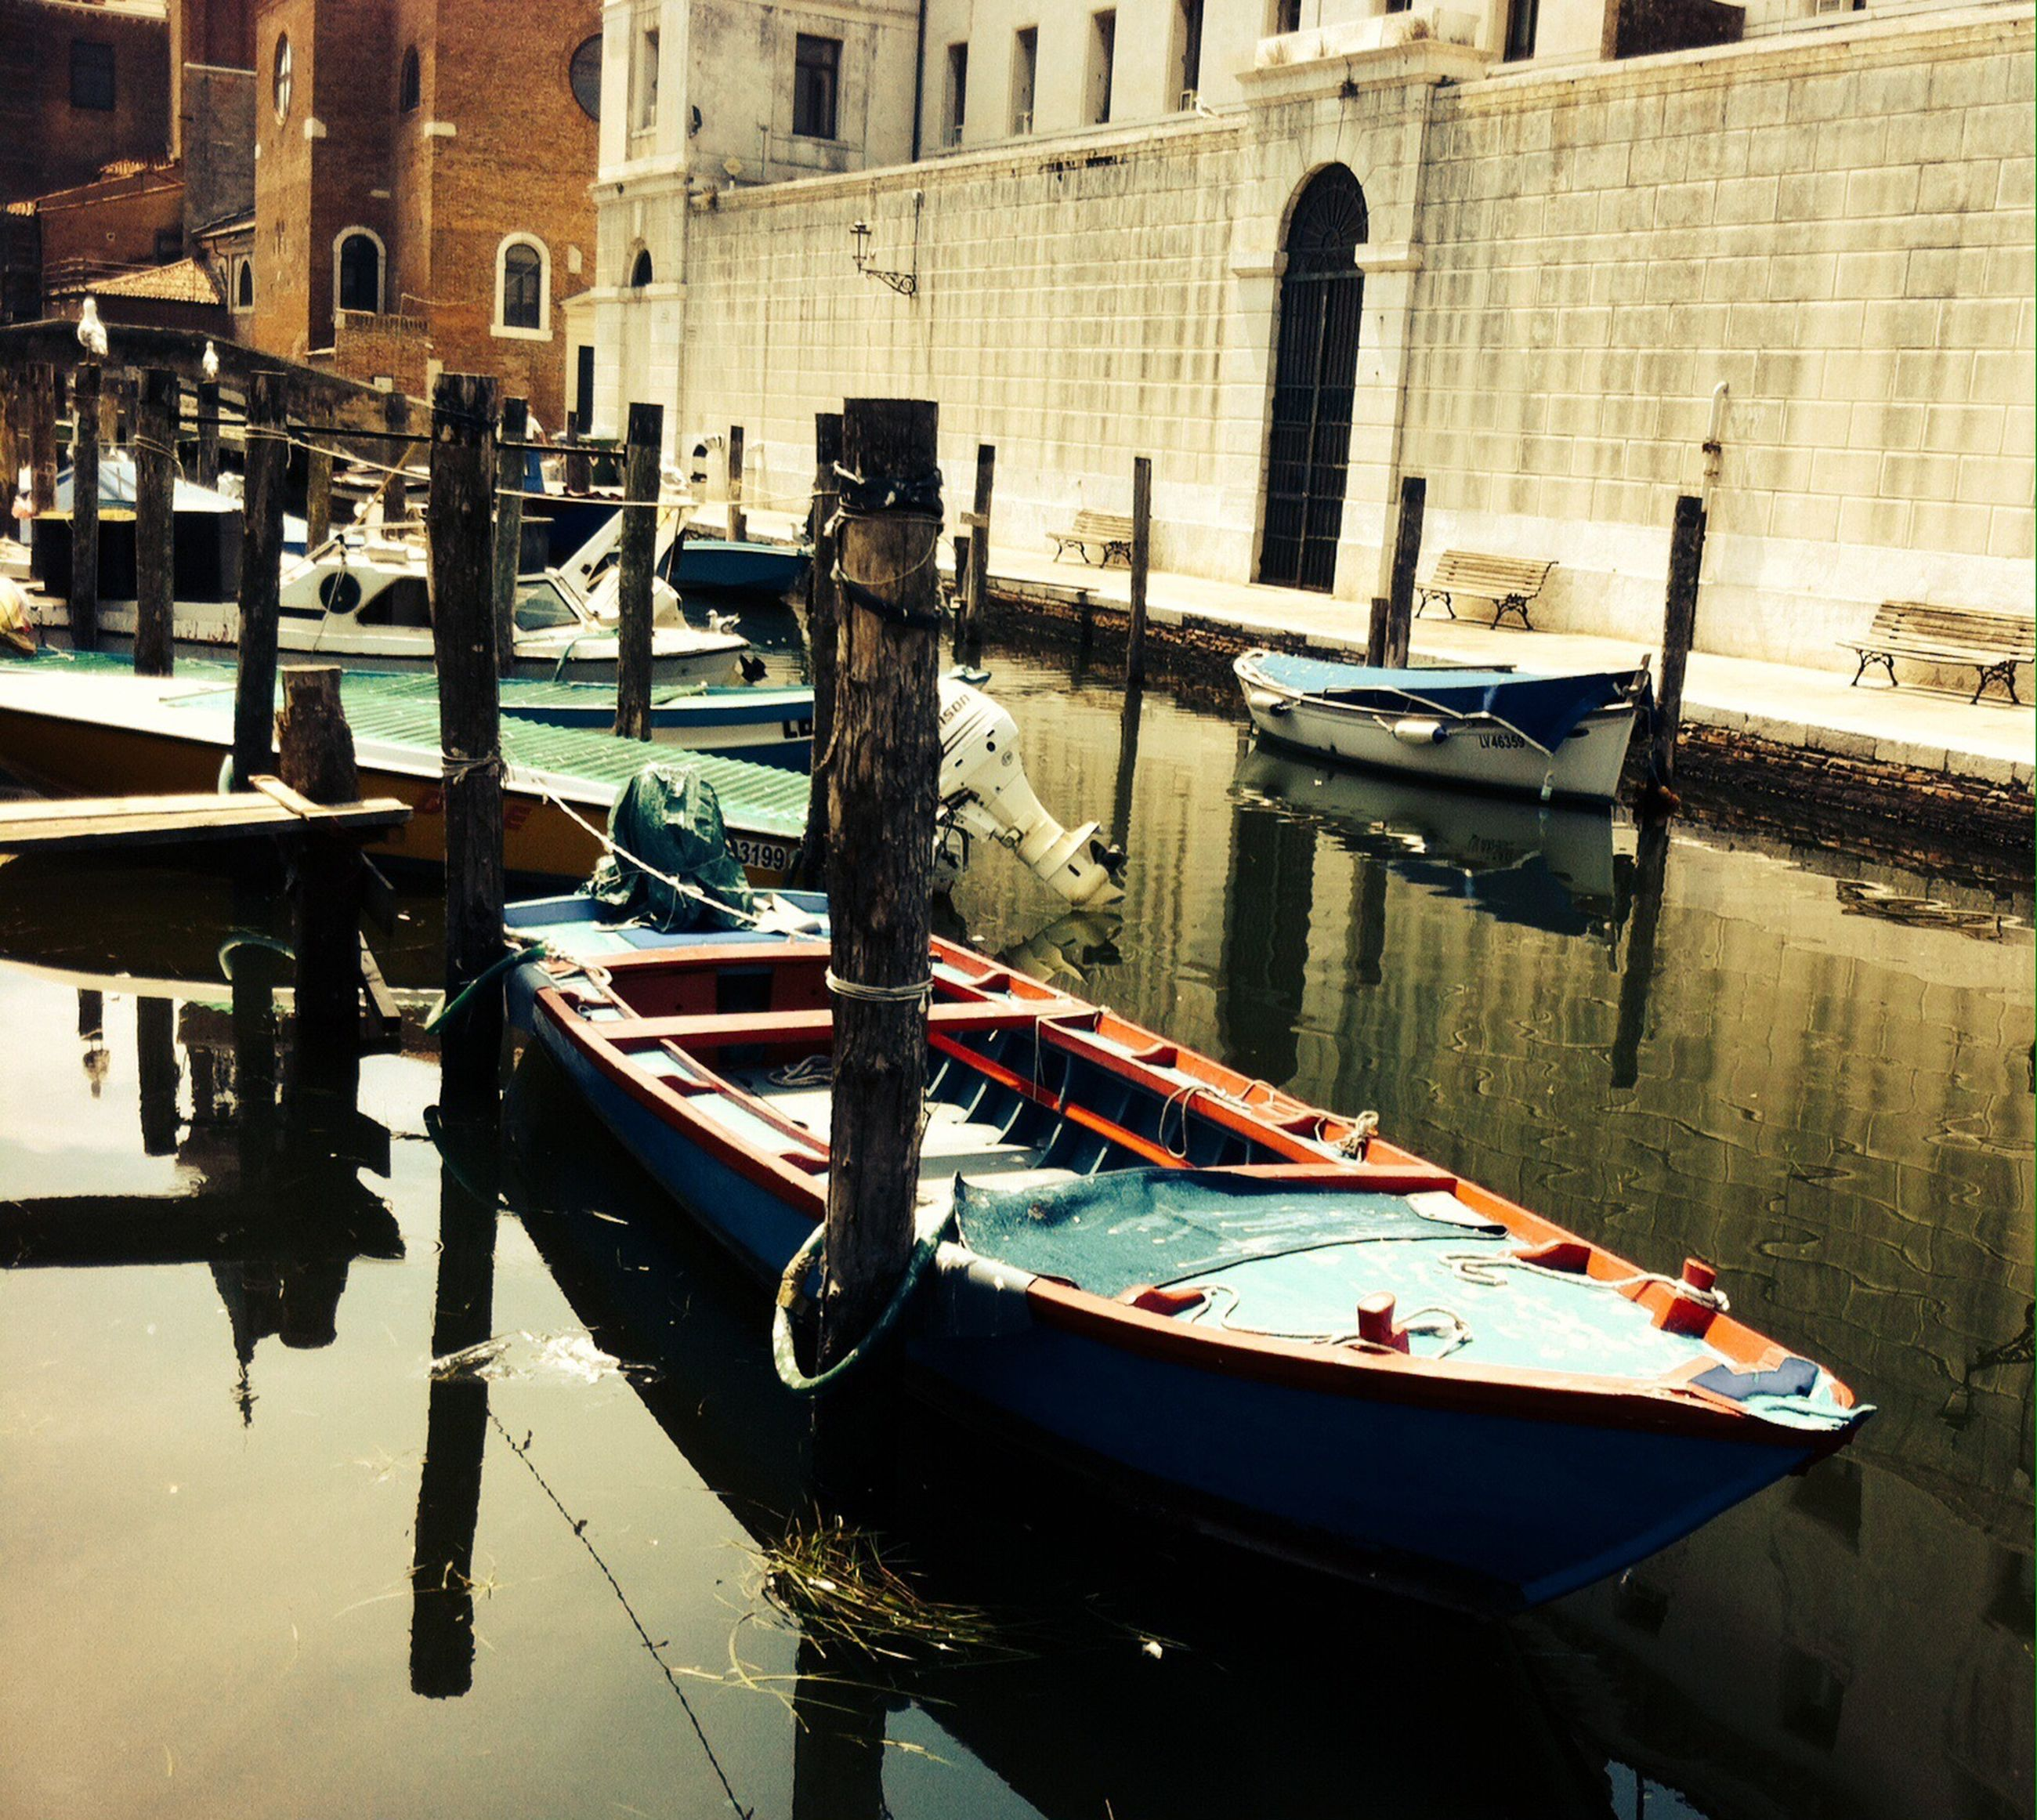 reflection, gondola - traditional boat, water, canal, building exterior, architecture, cultures, transportation, moored, nautical vessel, waterfront, outdoors, travel destinations, built structure, no people, day, gondolier